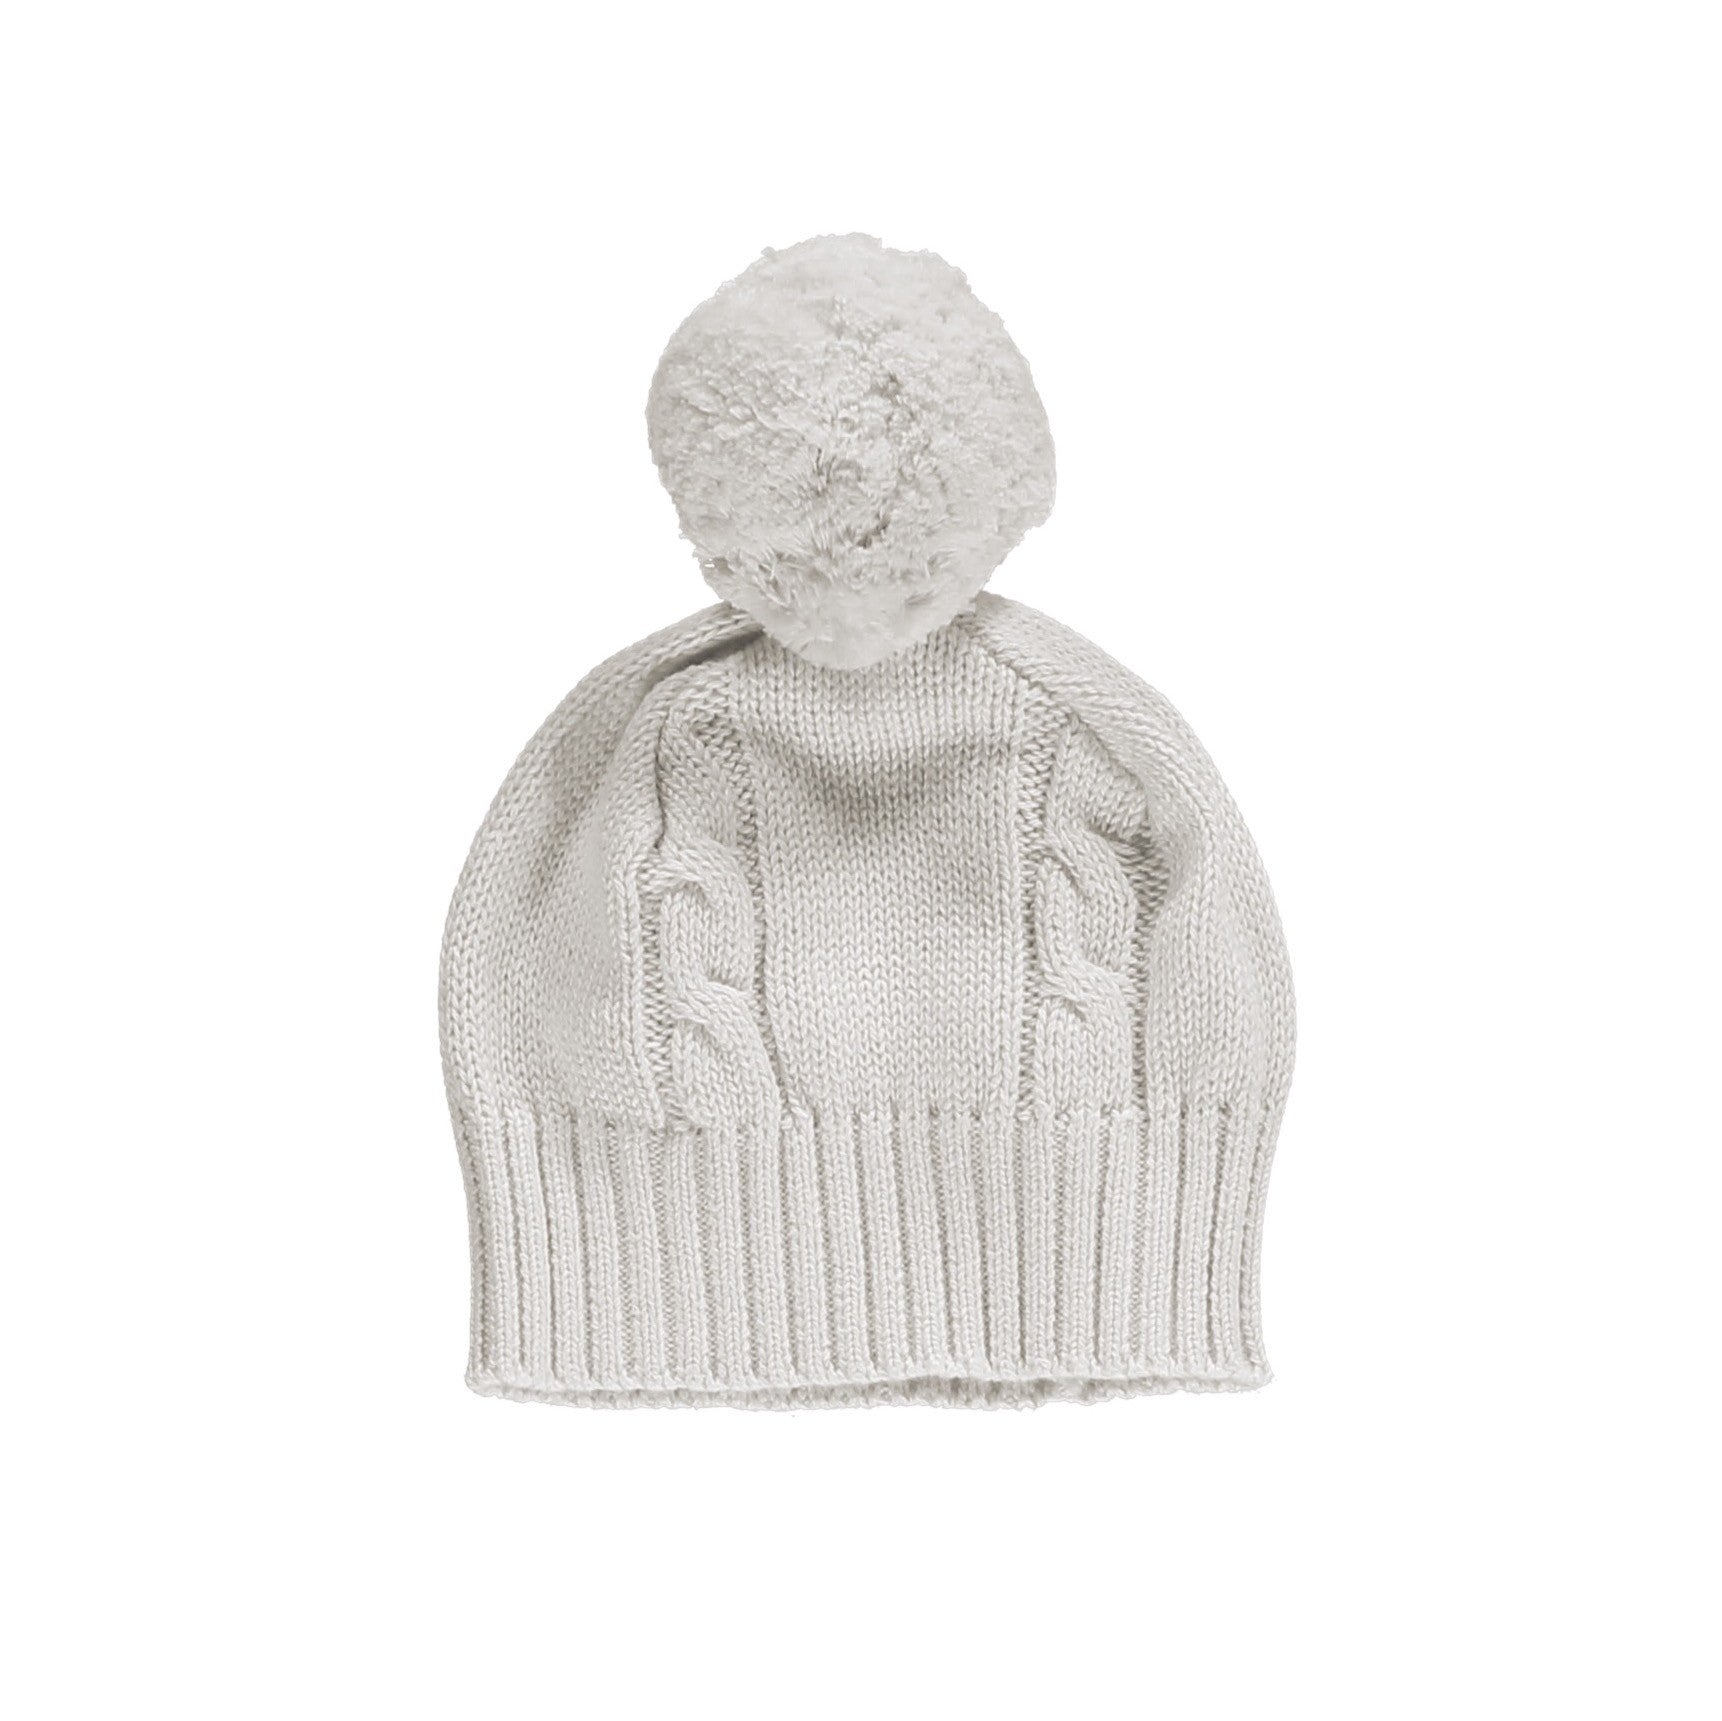 Fuzzy Cable Knit Bobble Hat - Ivory